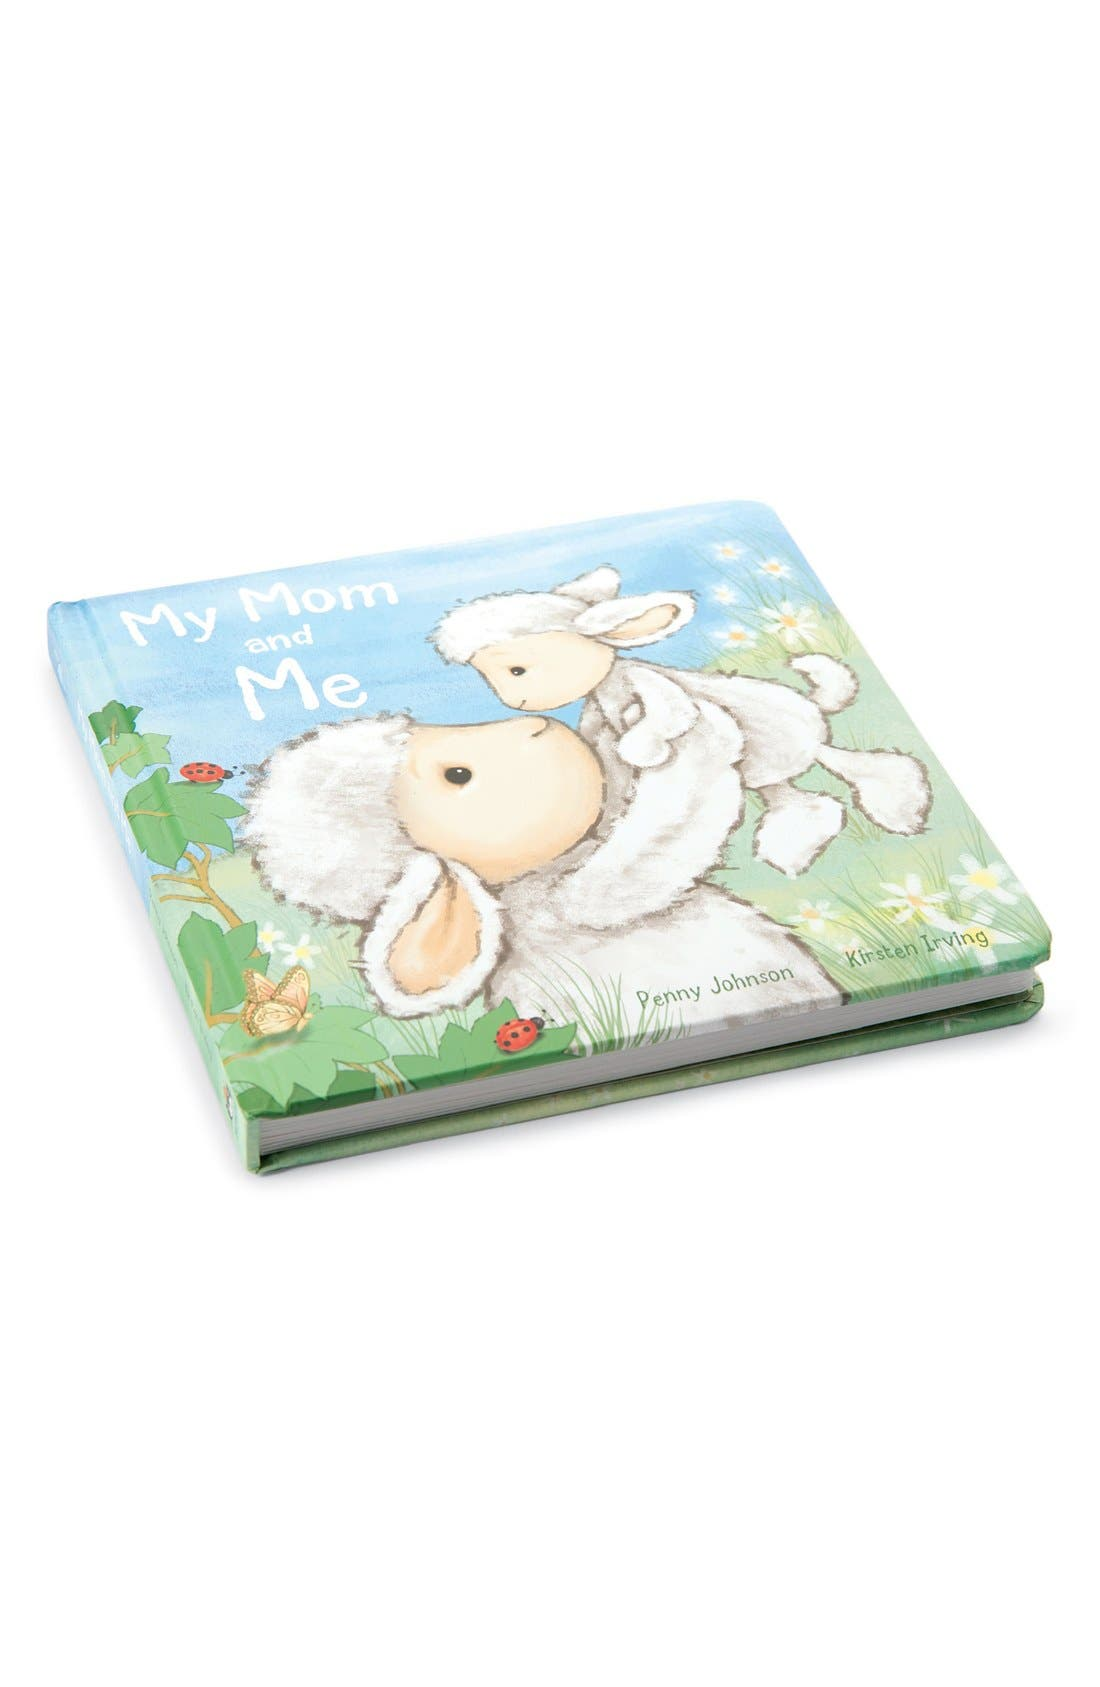 'My Mom and Me' Book